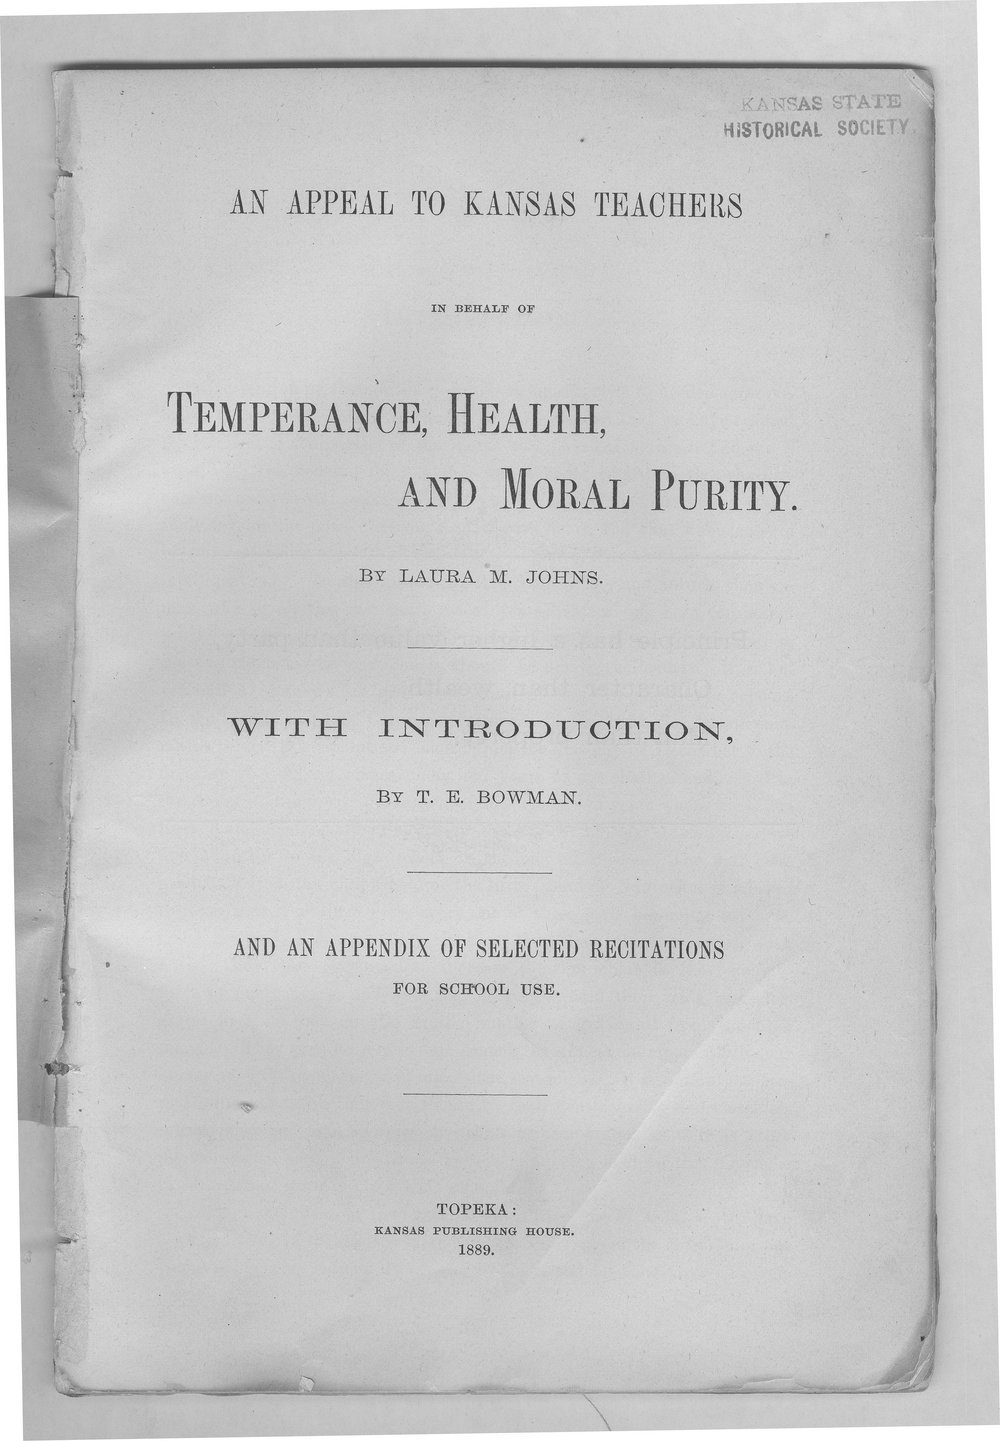 An appeal to Kansas teachers in behalf of temperance, health, and moral purity - Title Page